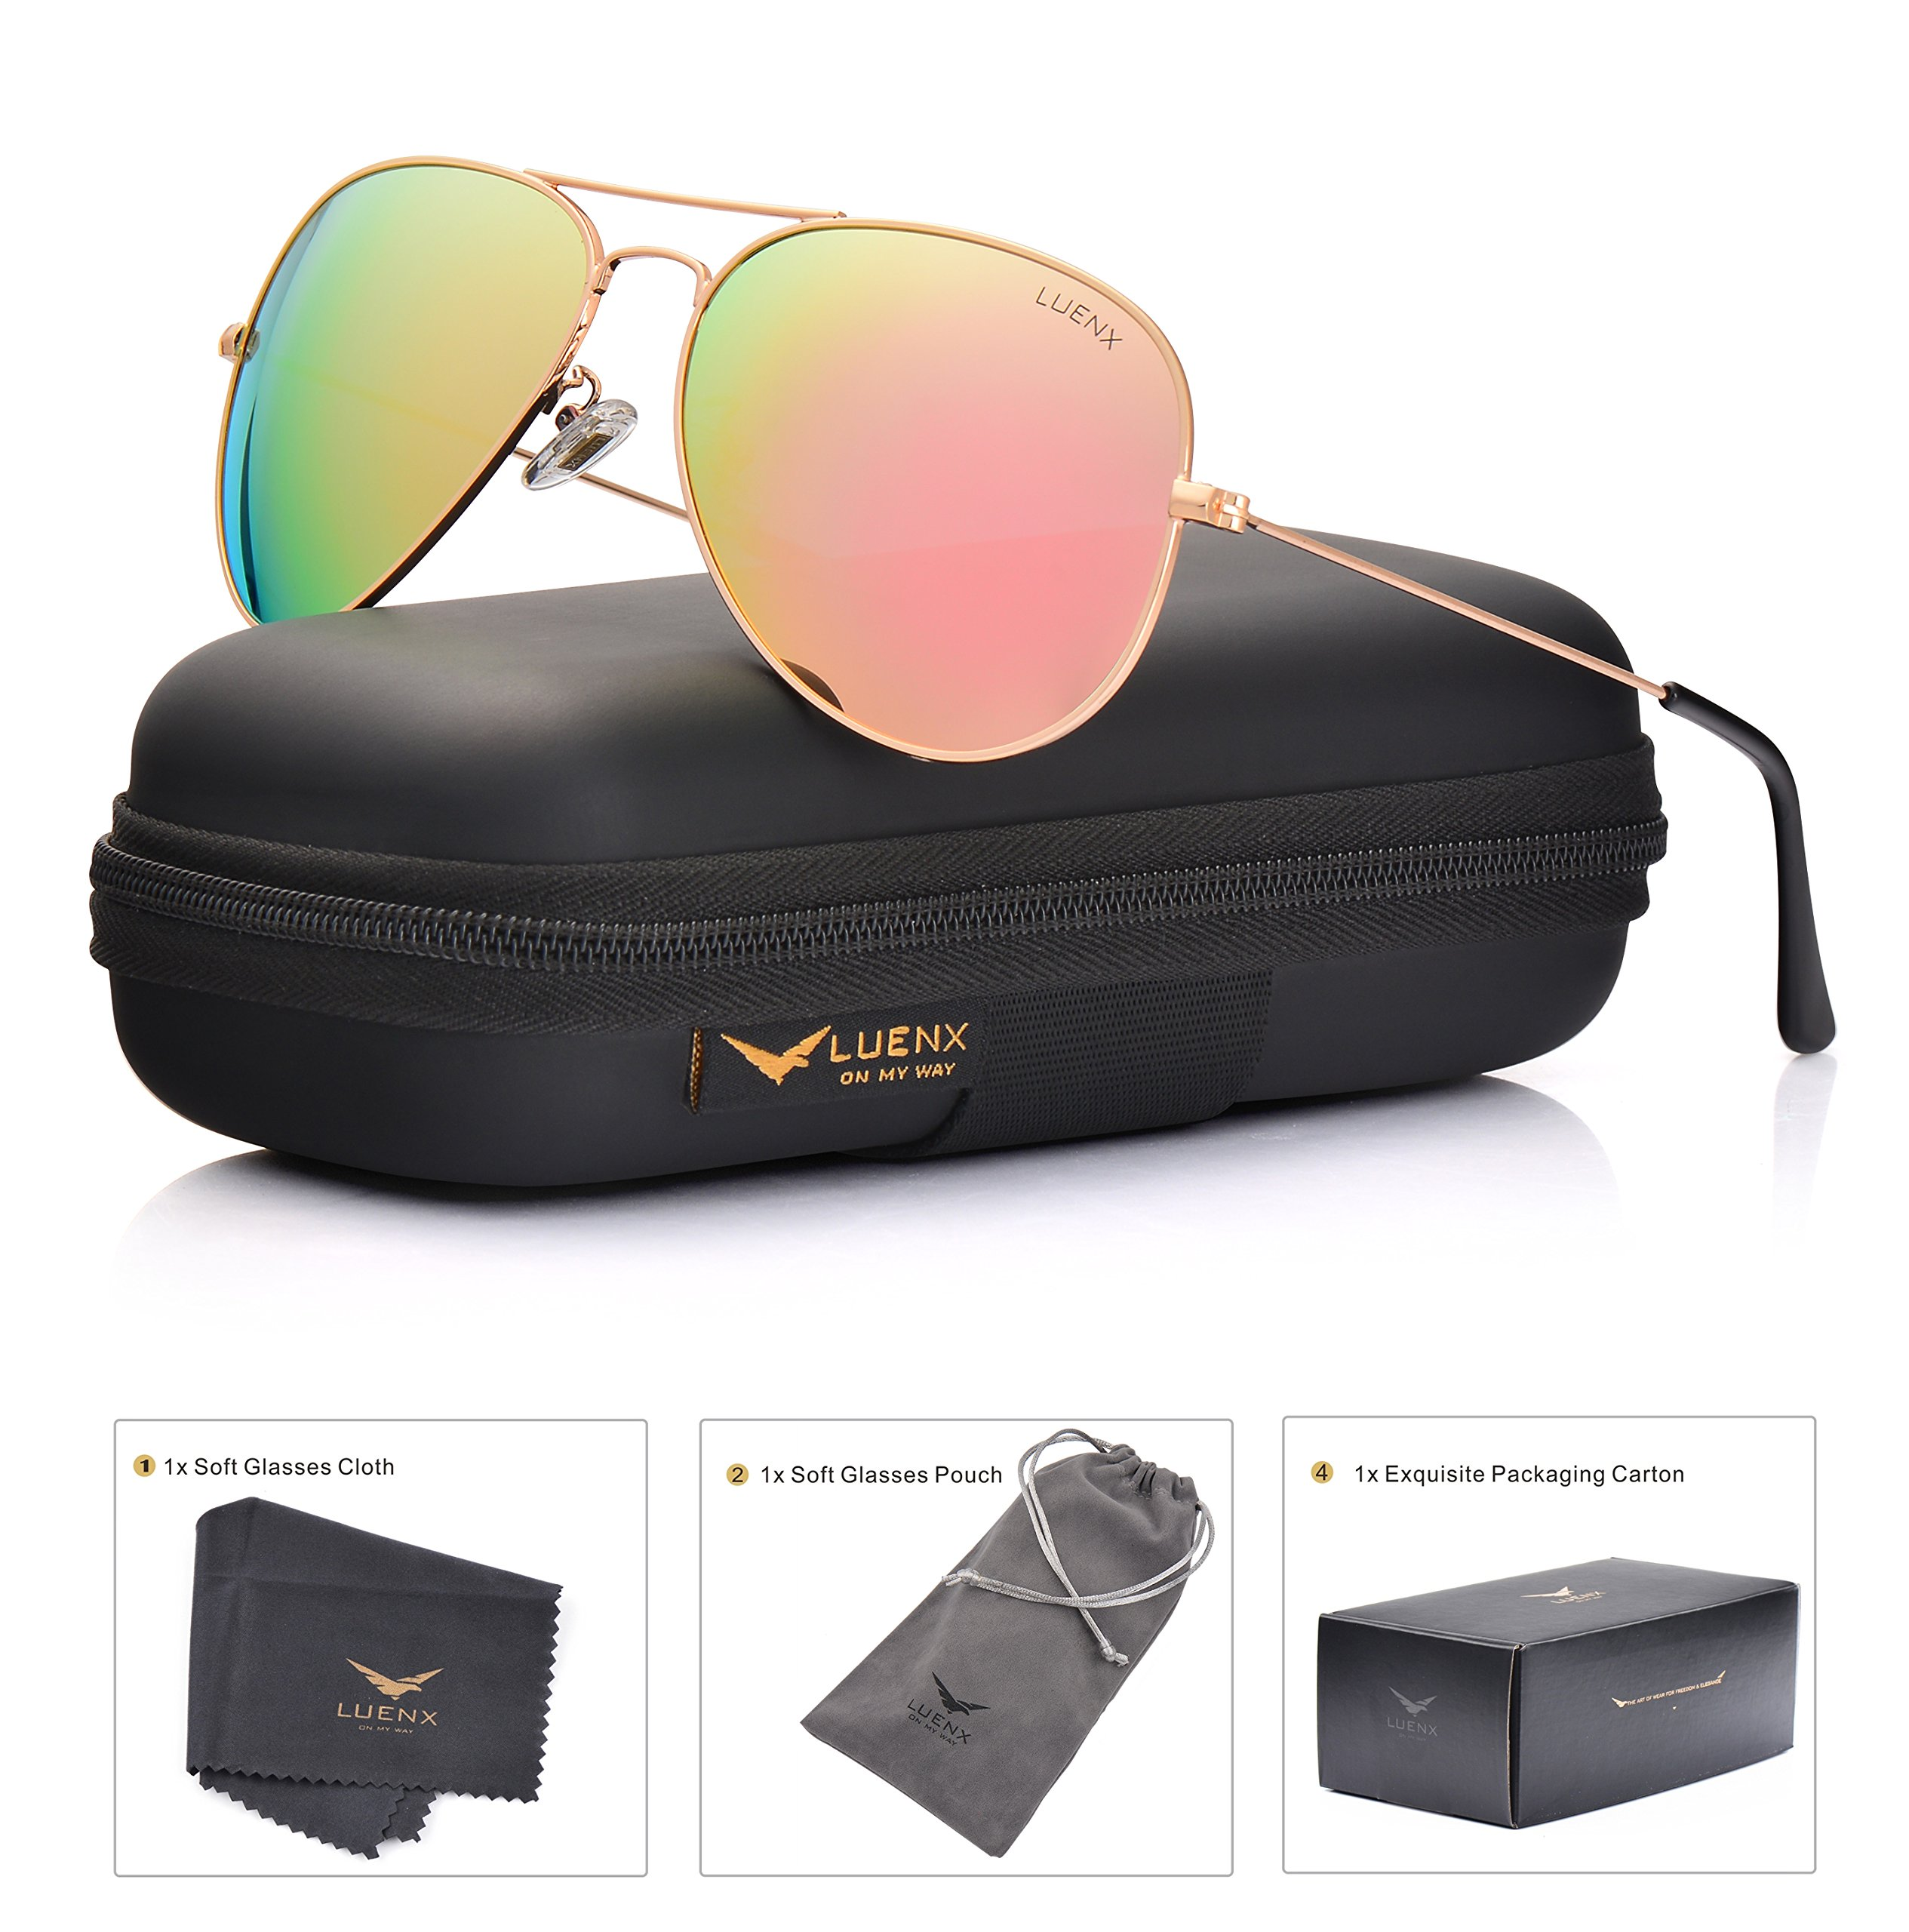 LUENX Aviator Womens Mens Sunglasses Polarized Pink Mirrored Lenses Gold Frame UV 400 Protection Classic Style